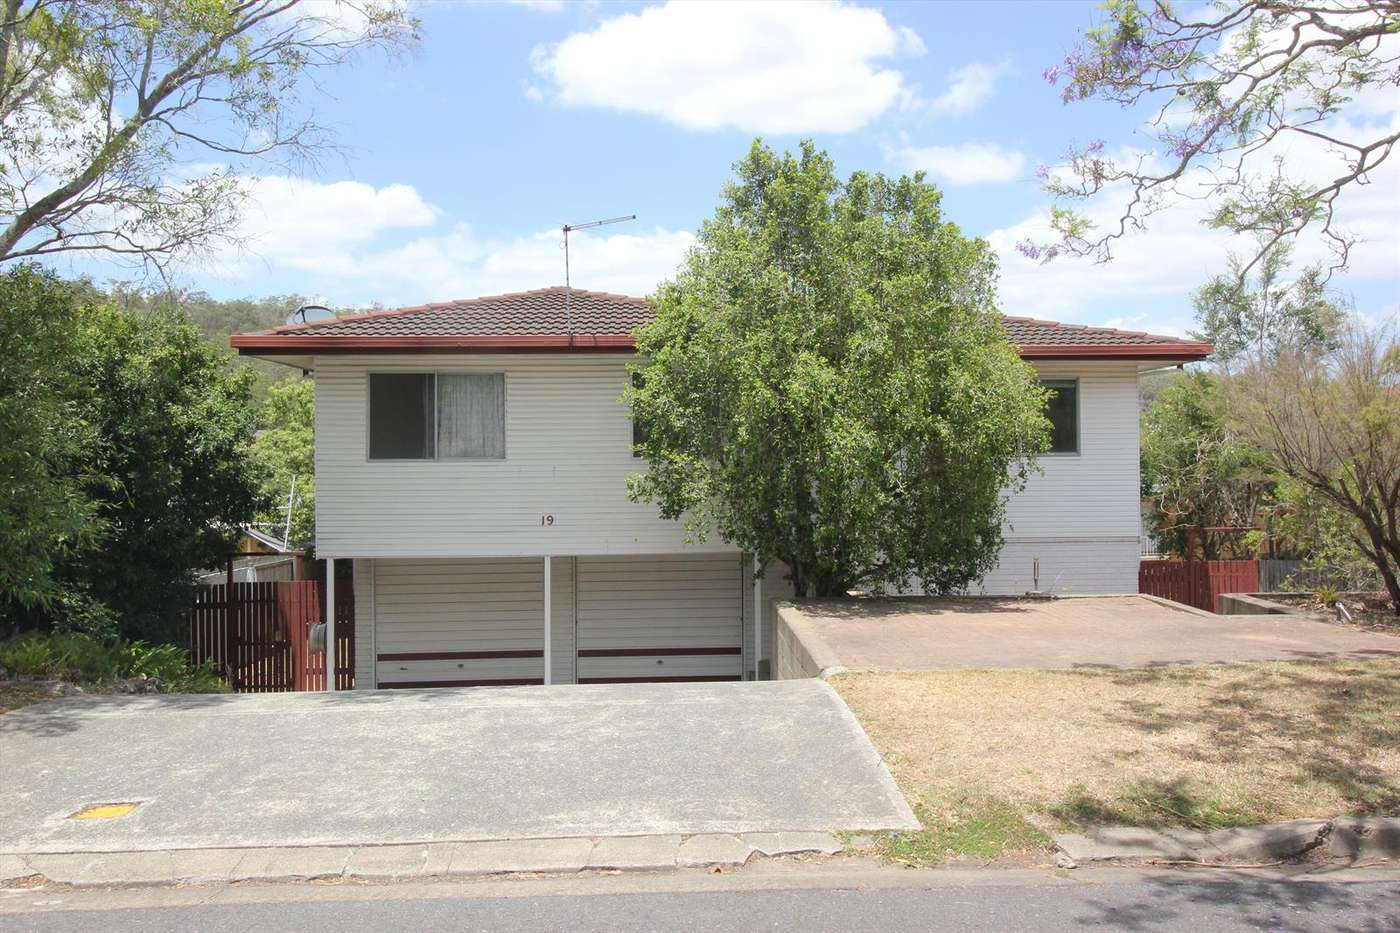 Main view of Homely house listing, 19 Ivymount Street, Nathan, QLD 4111